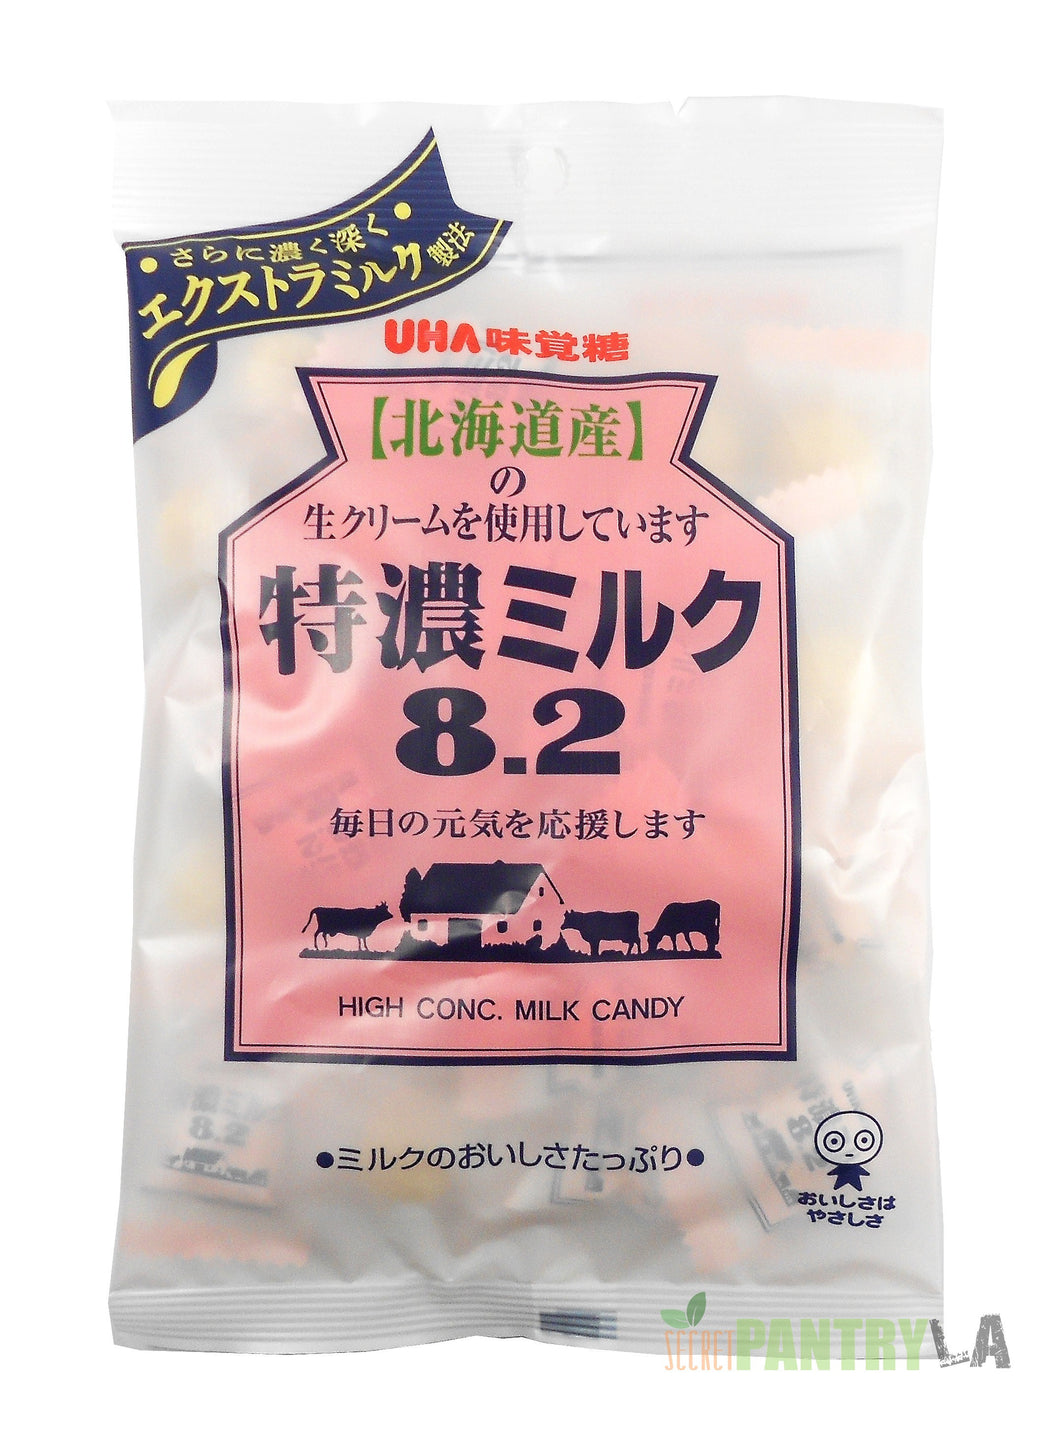 UHA 8.2 High Concentrated Tokuno Milk Candy 3.52 OZ.